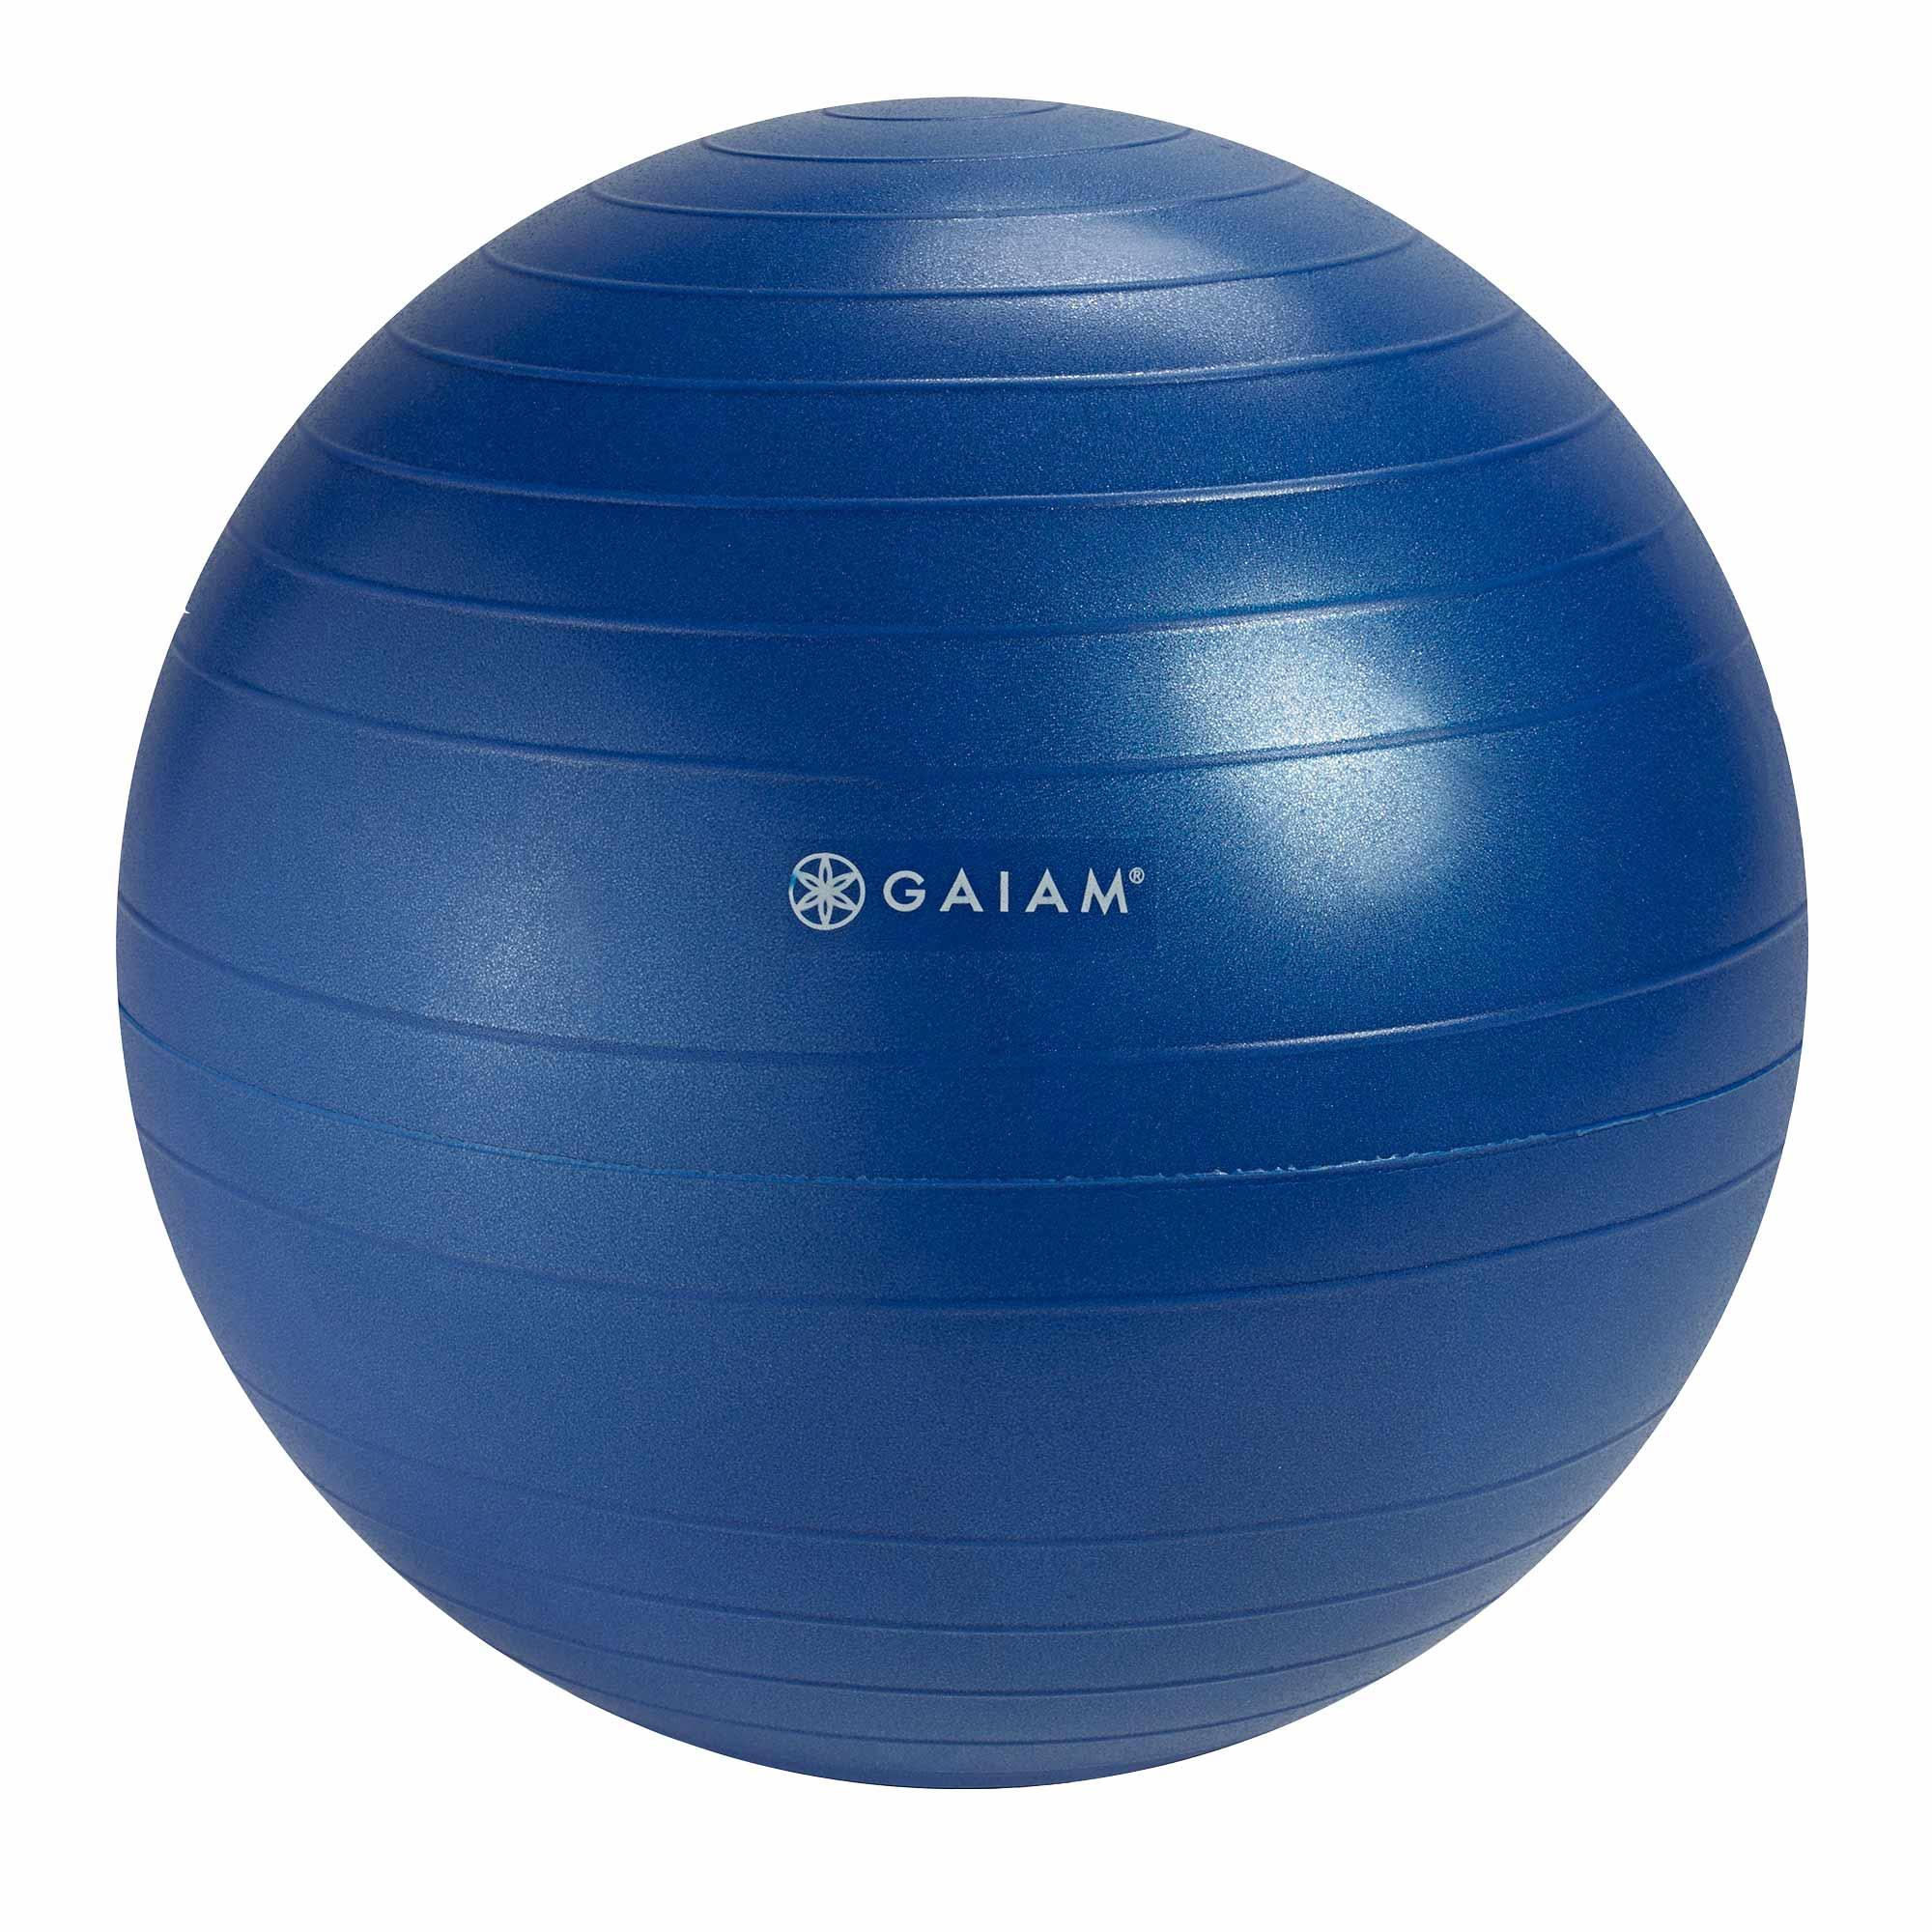 Amazon.com : Gaiam Balance Ball Chair Replacement Ball, 52cm, Ocean Blue : Sports & Outdoors